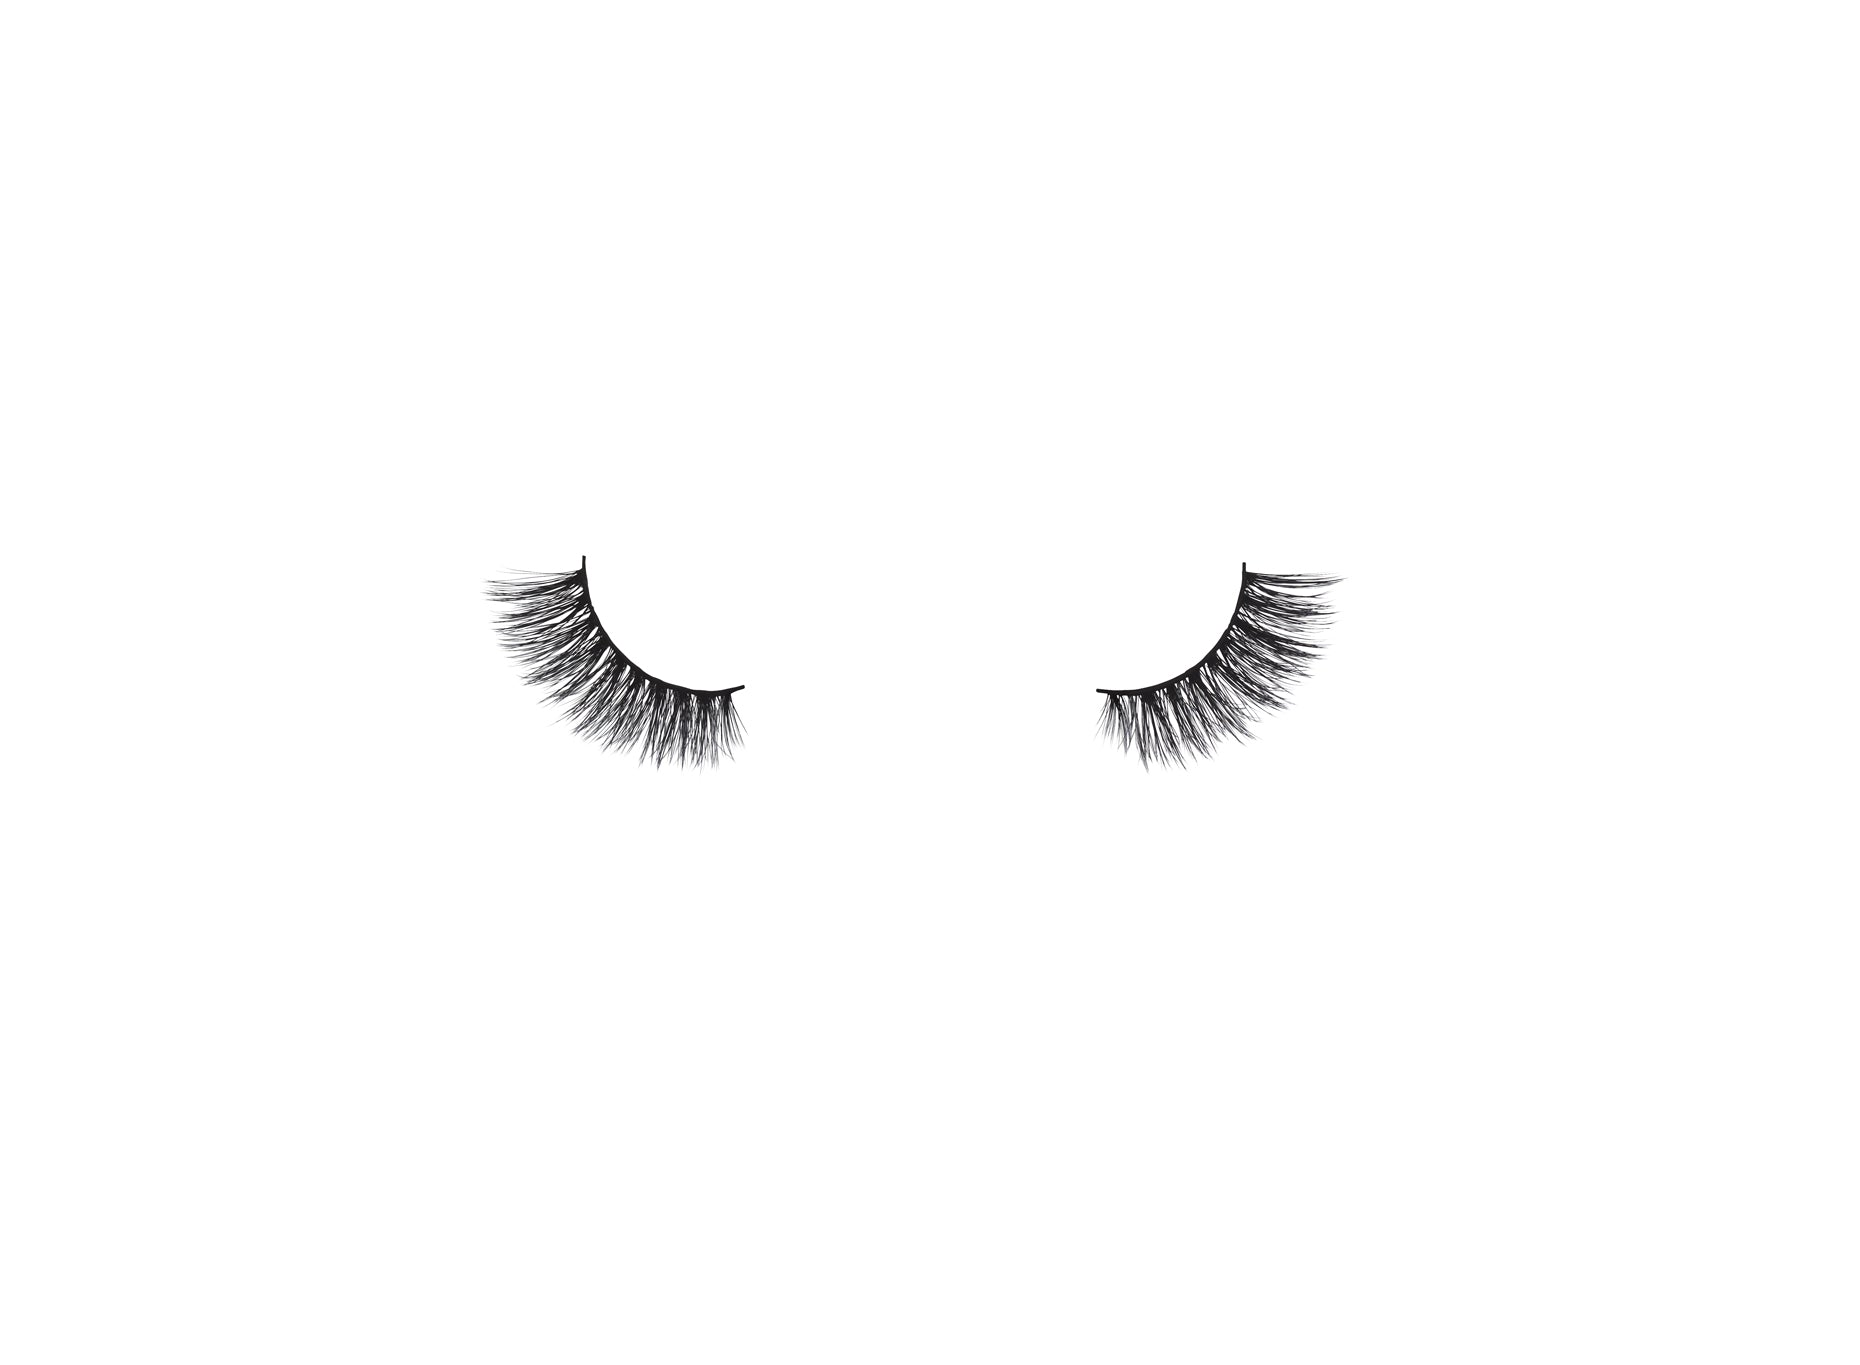 thumbnail - beginner false lashes from Lash Star Beauty